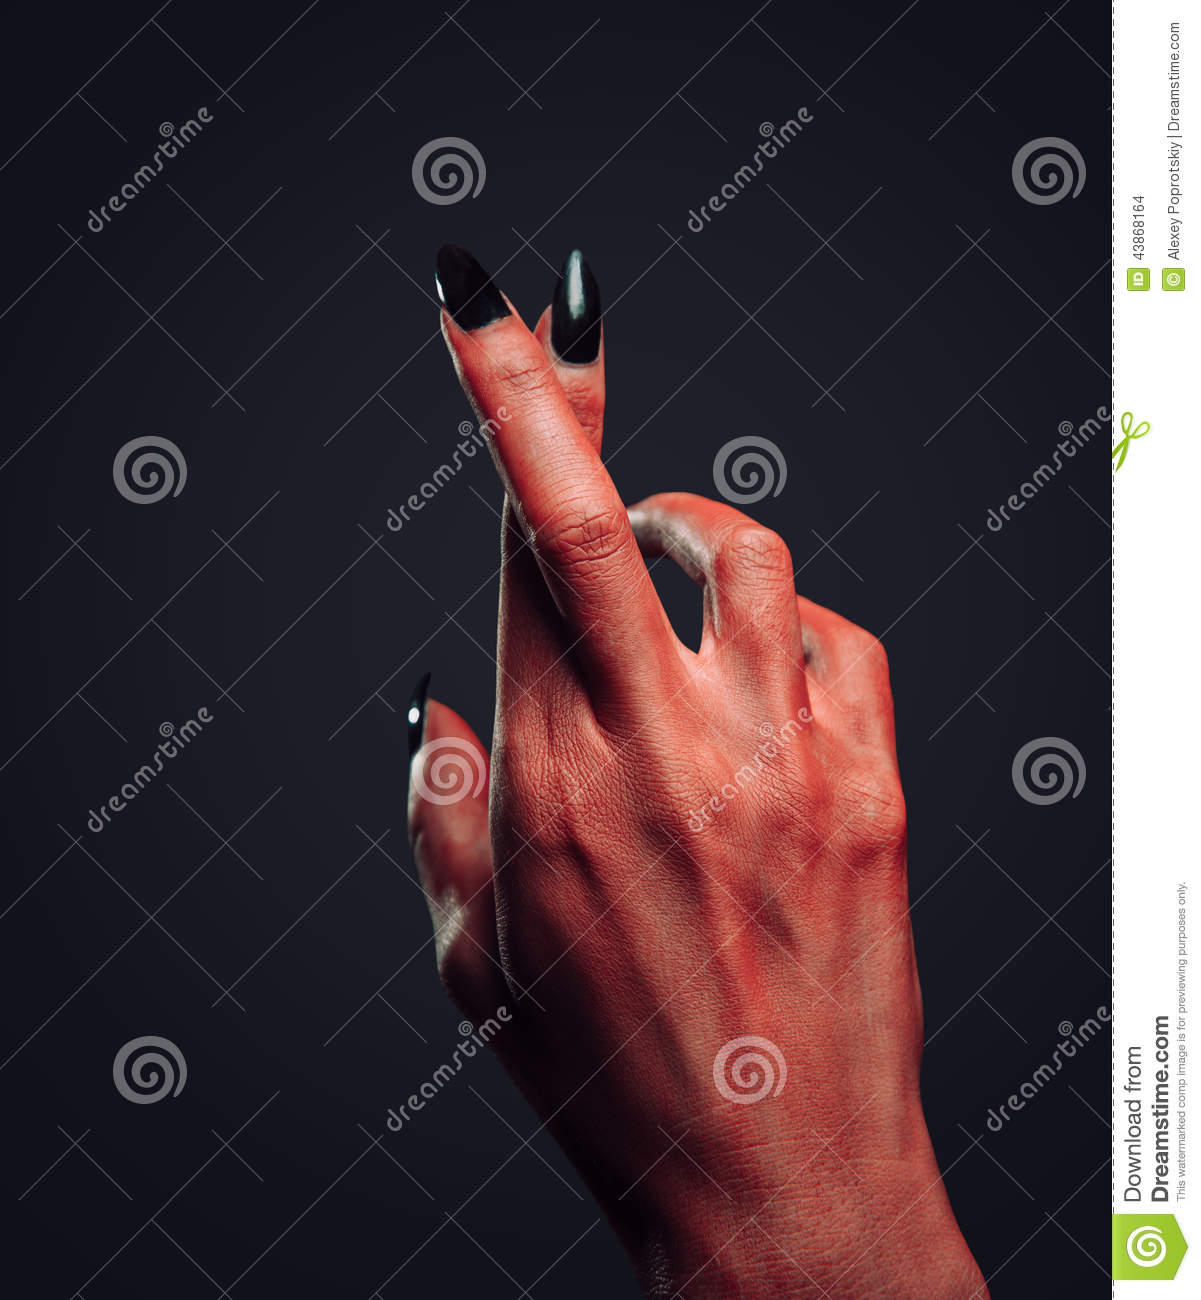 Devil hand with gesture cross fingers stock photo image of party devil hand with gesture cross fingers buycottarizona